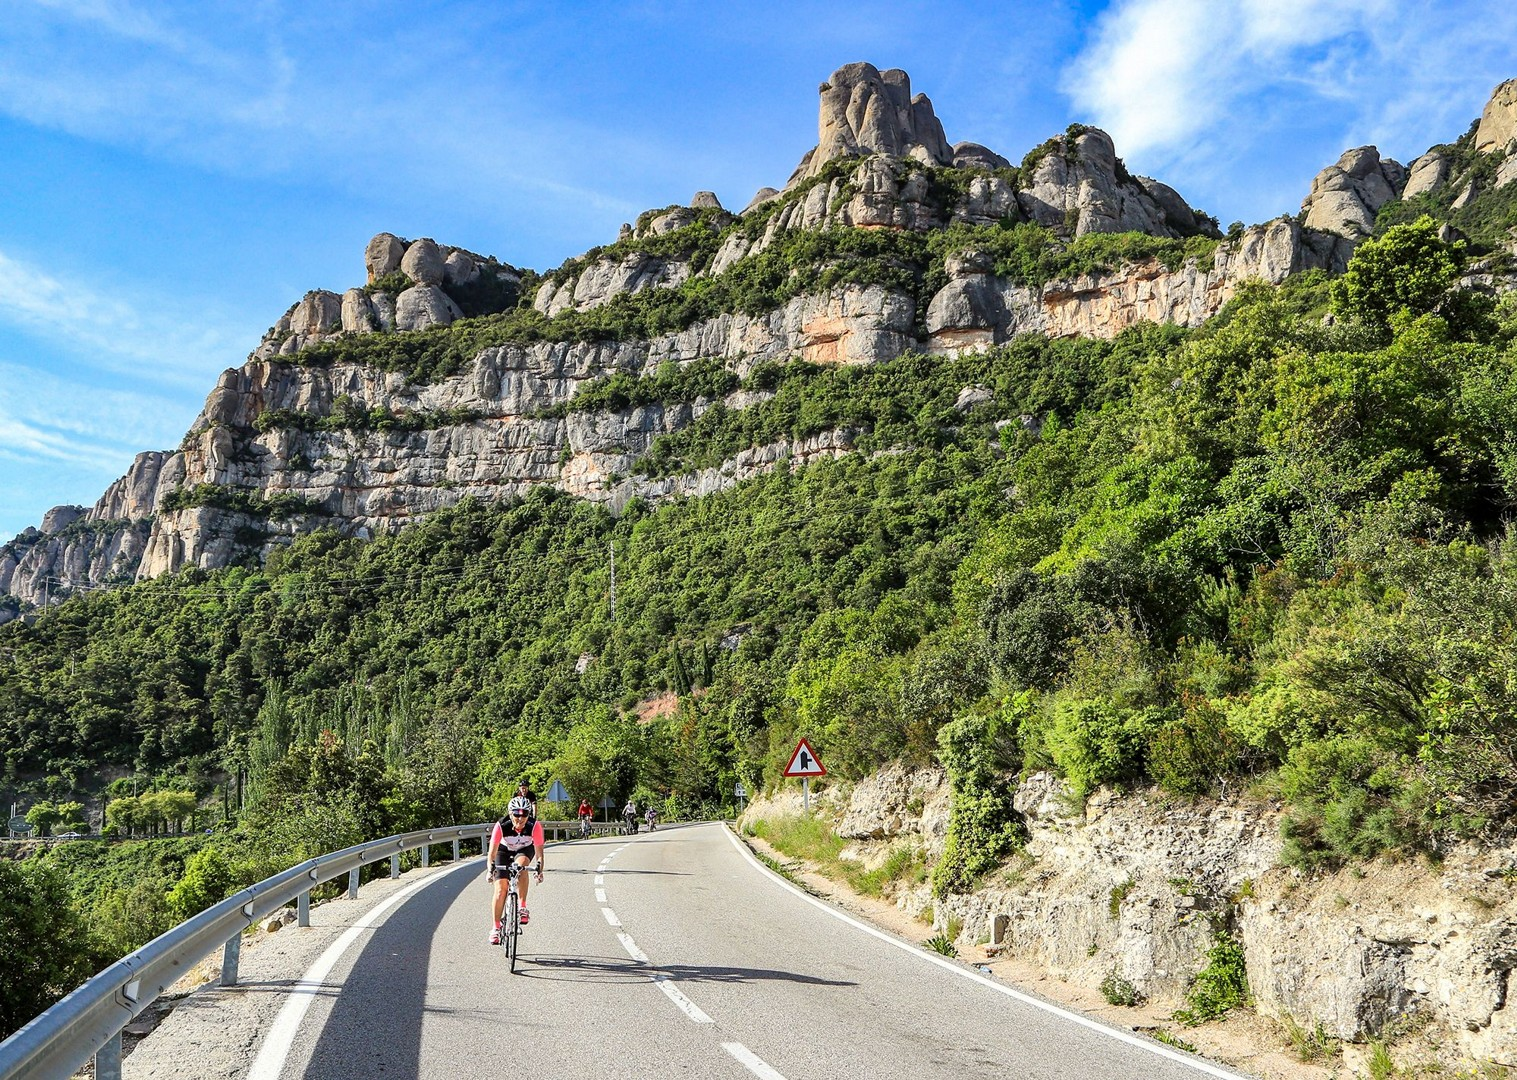 saddle-skedaddle-bilbao-to-barcelona-guided-road-cycling-holiday-northern-spain.jpg - Northern Spain - Bilbao to Barcelona - Guided Road Cycling Holiday - Road Cycling